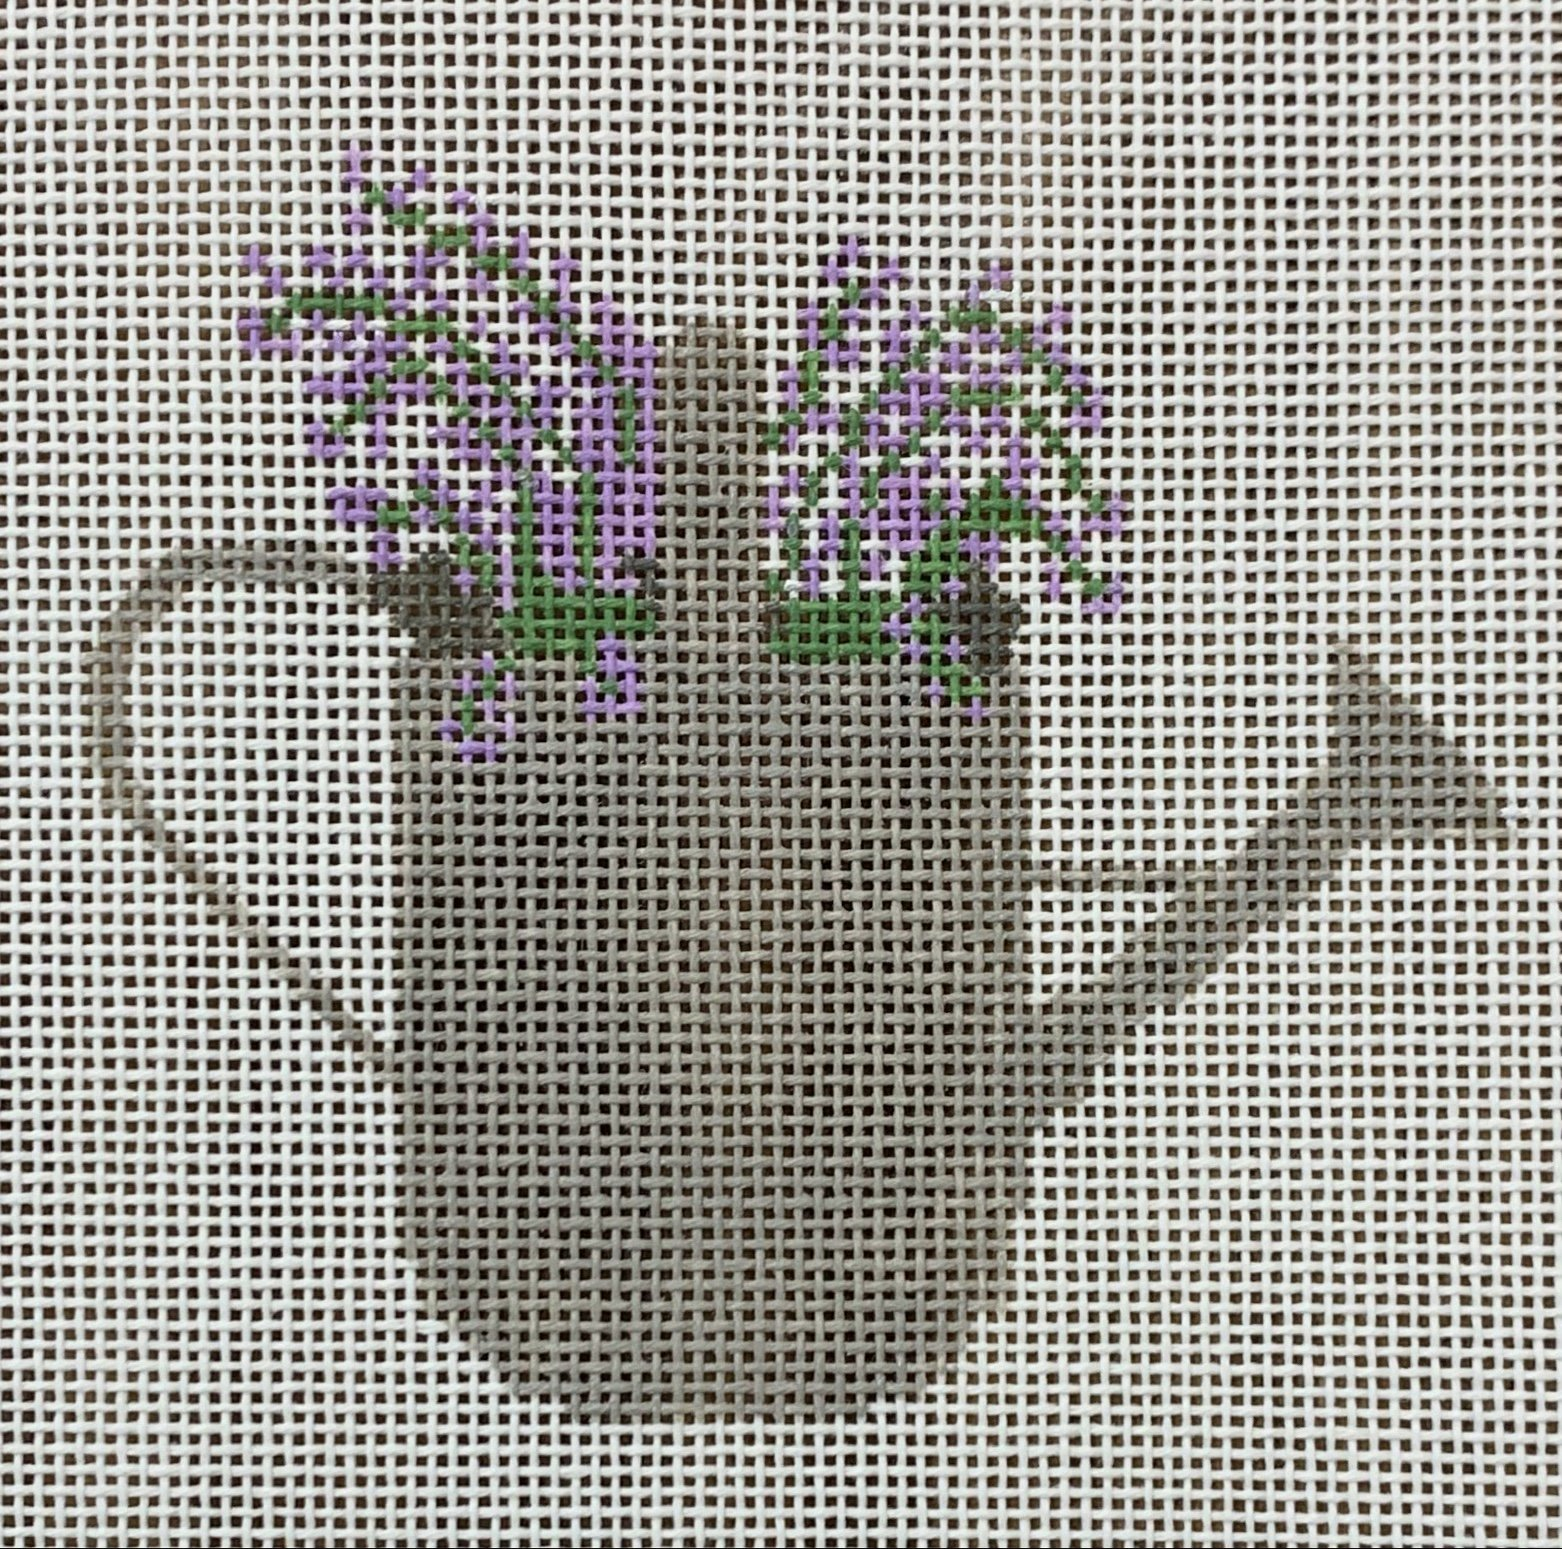 Watering Can with Lavender